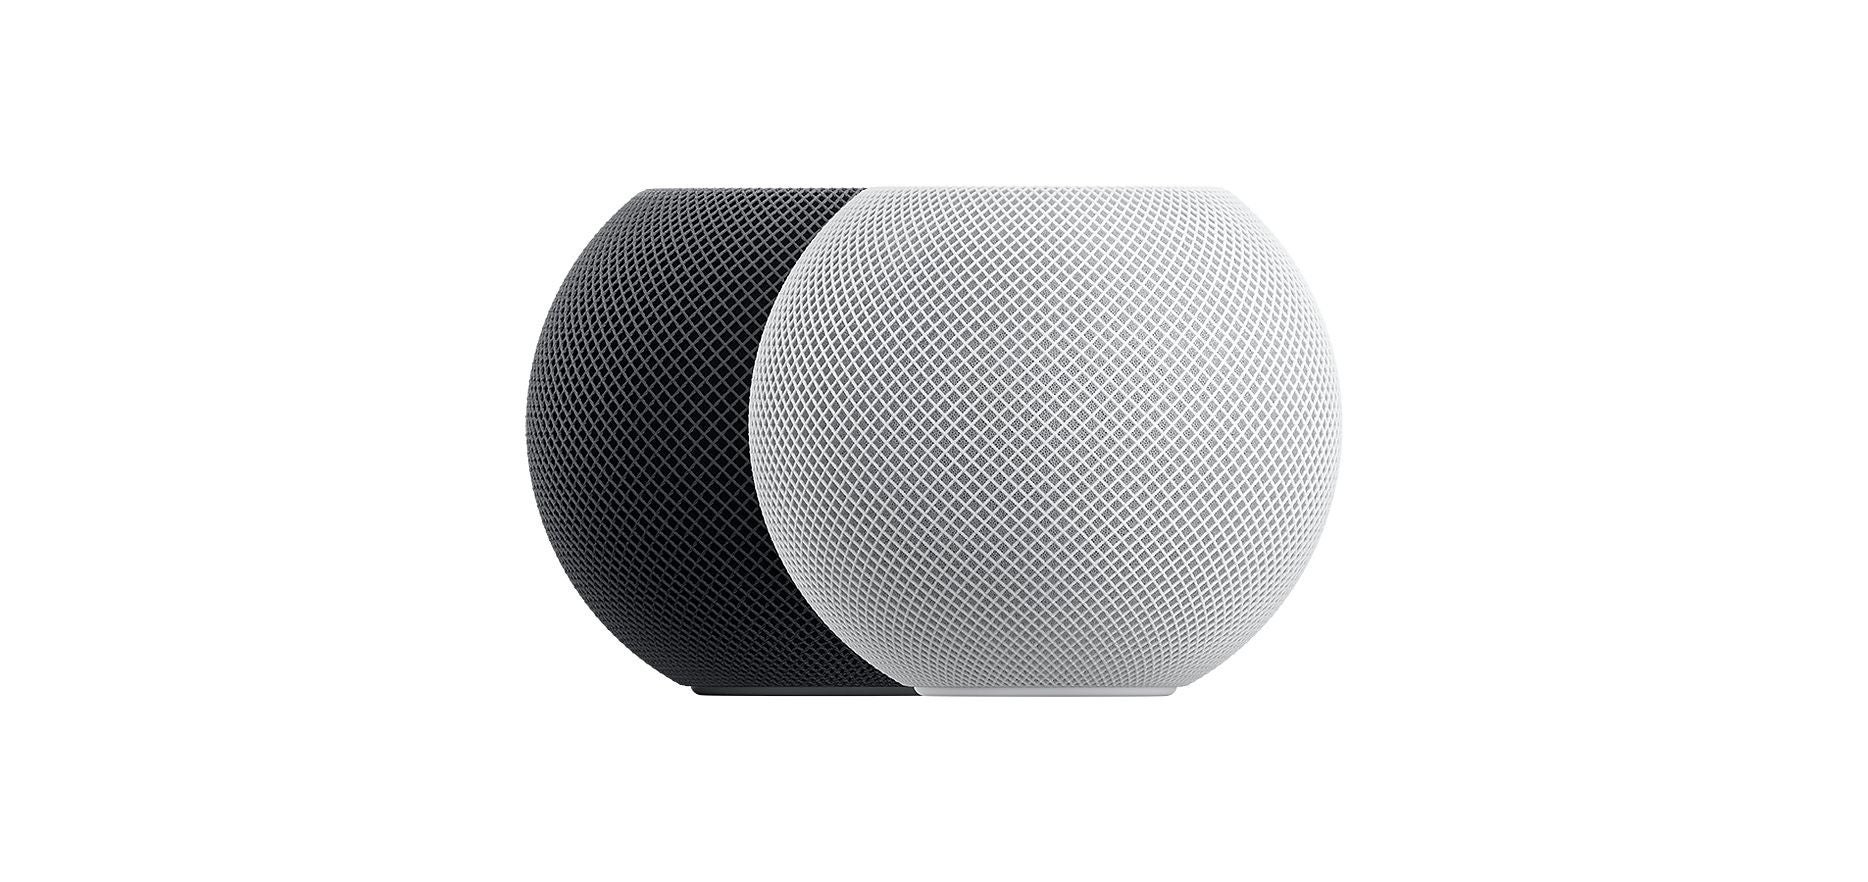 Two Apple HomePod mini's - one in grey and one in white